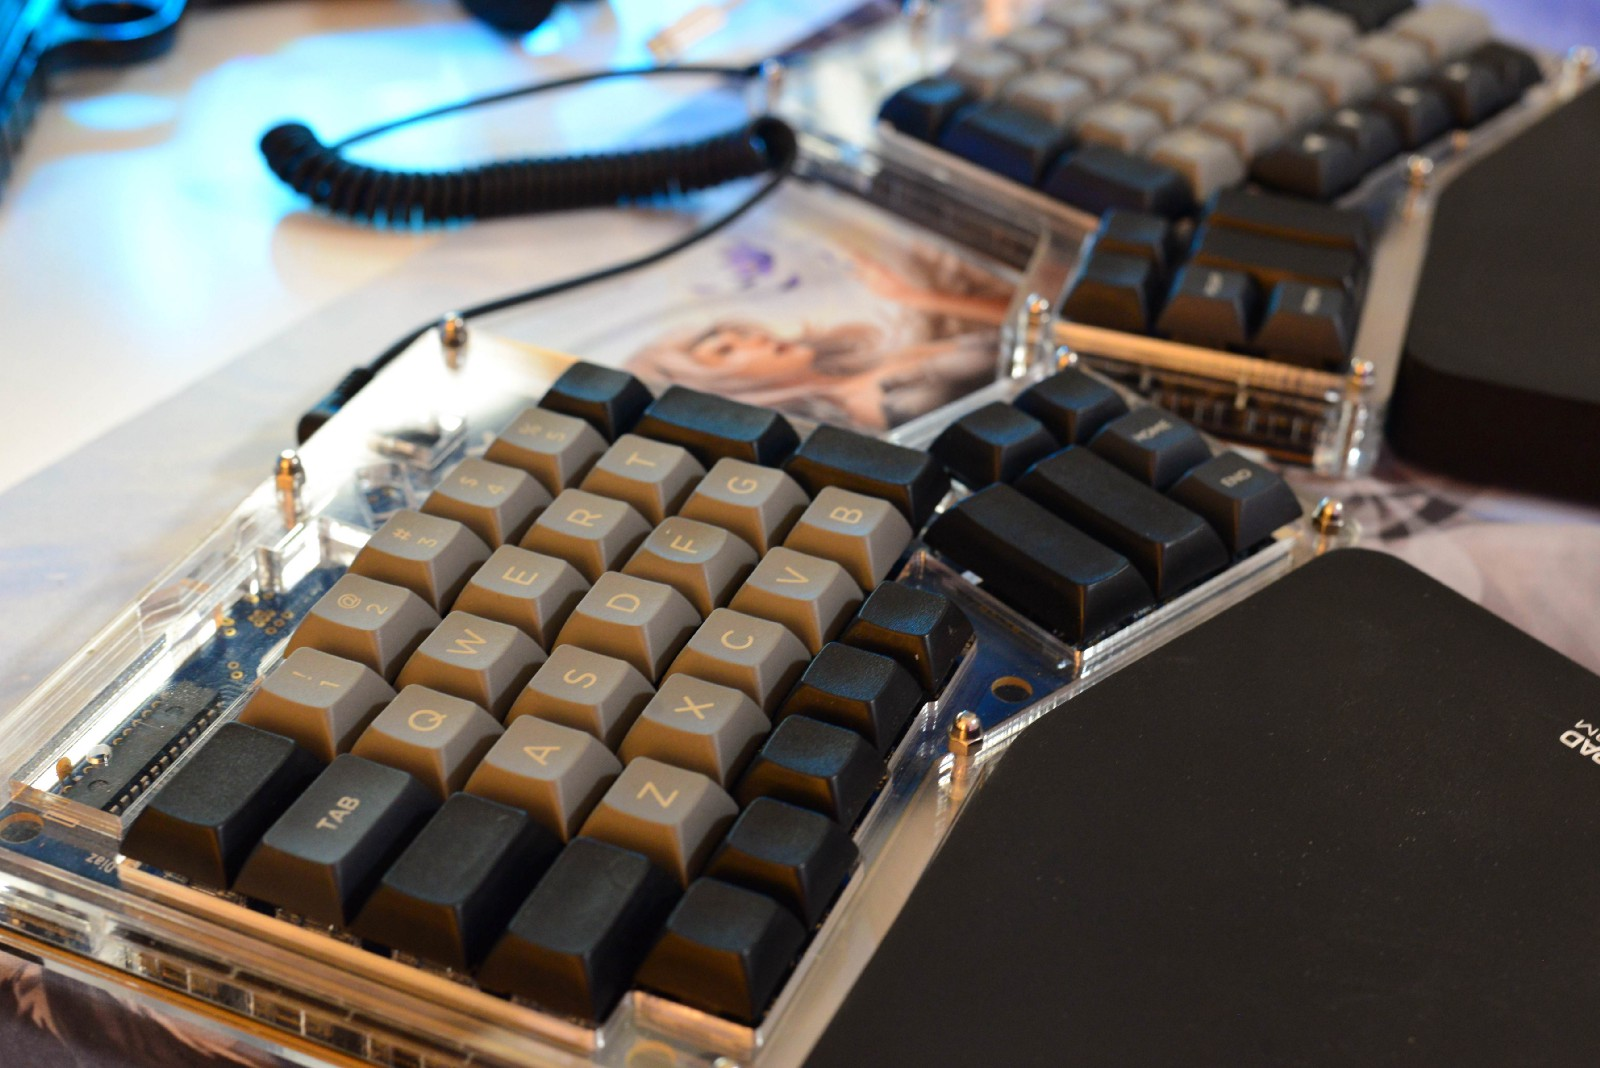 Mechanical and custom built keyboards - By